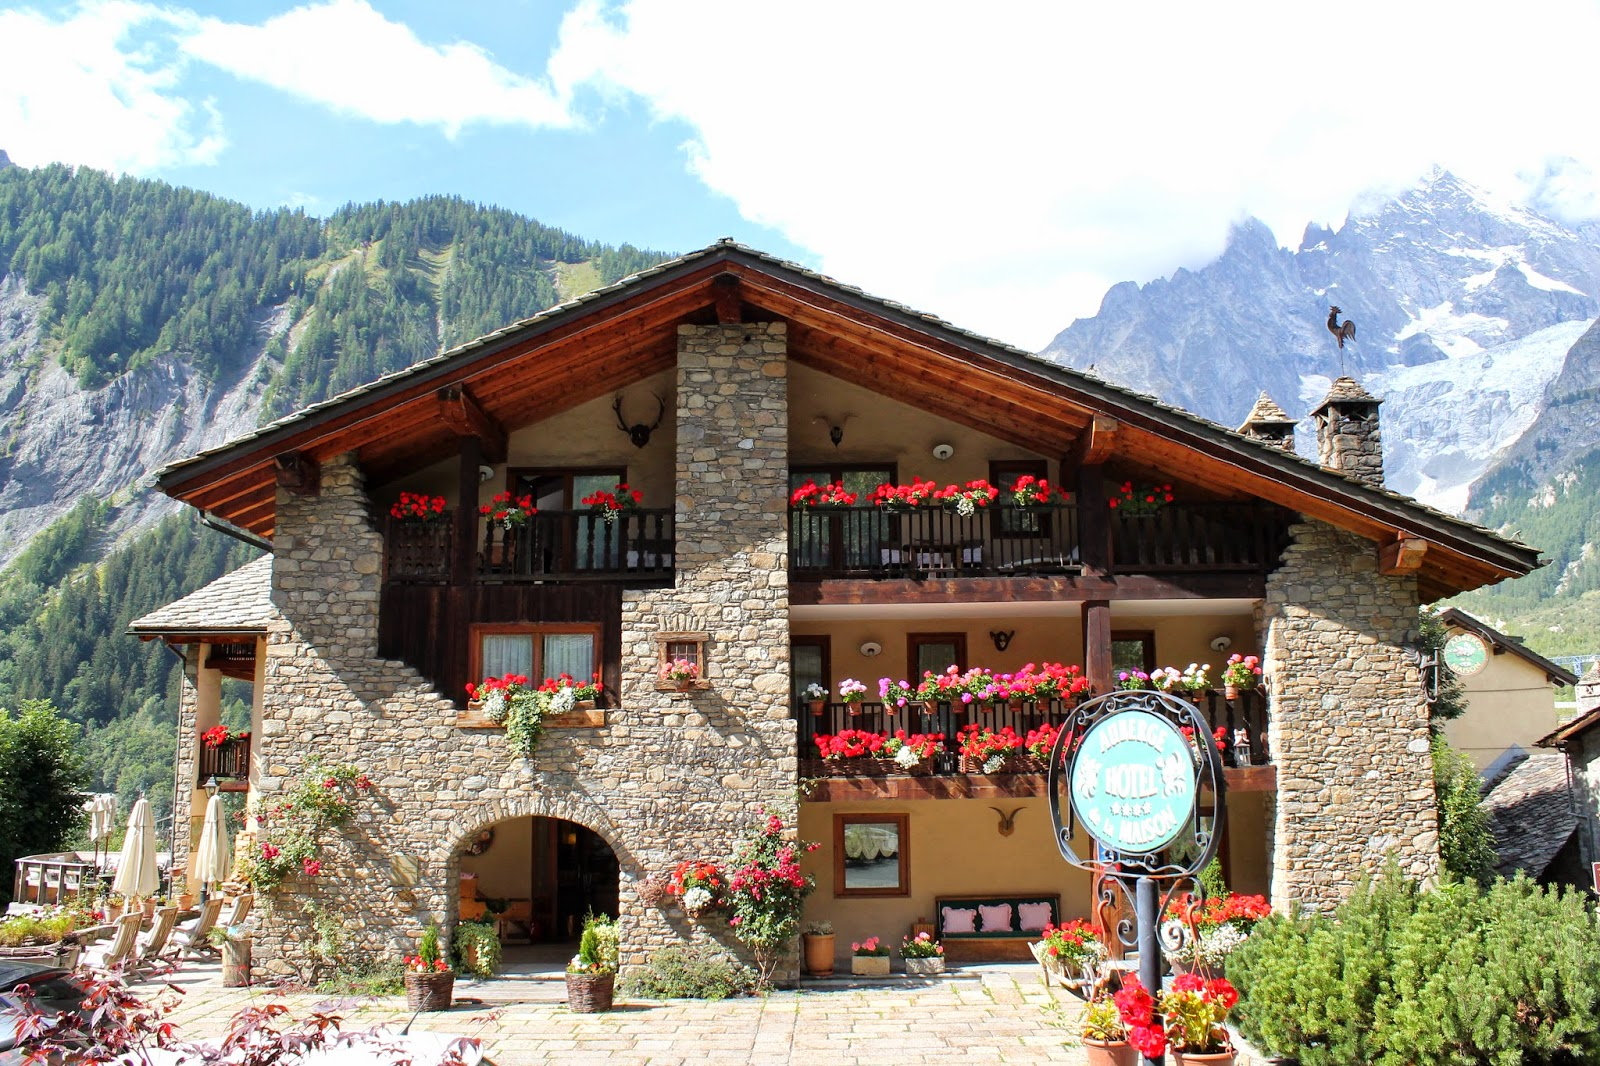 Bella pummarola courmayeur photo diary pt 1 for Auberge de la maison courmayeur italy